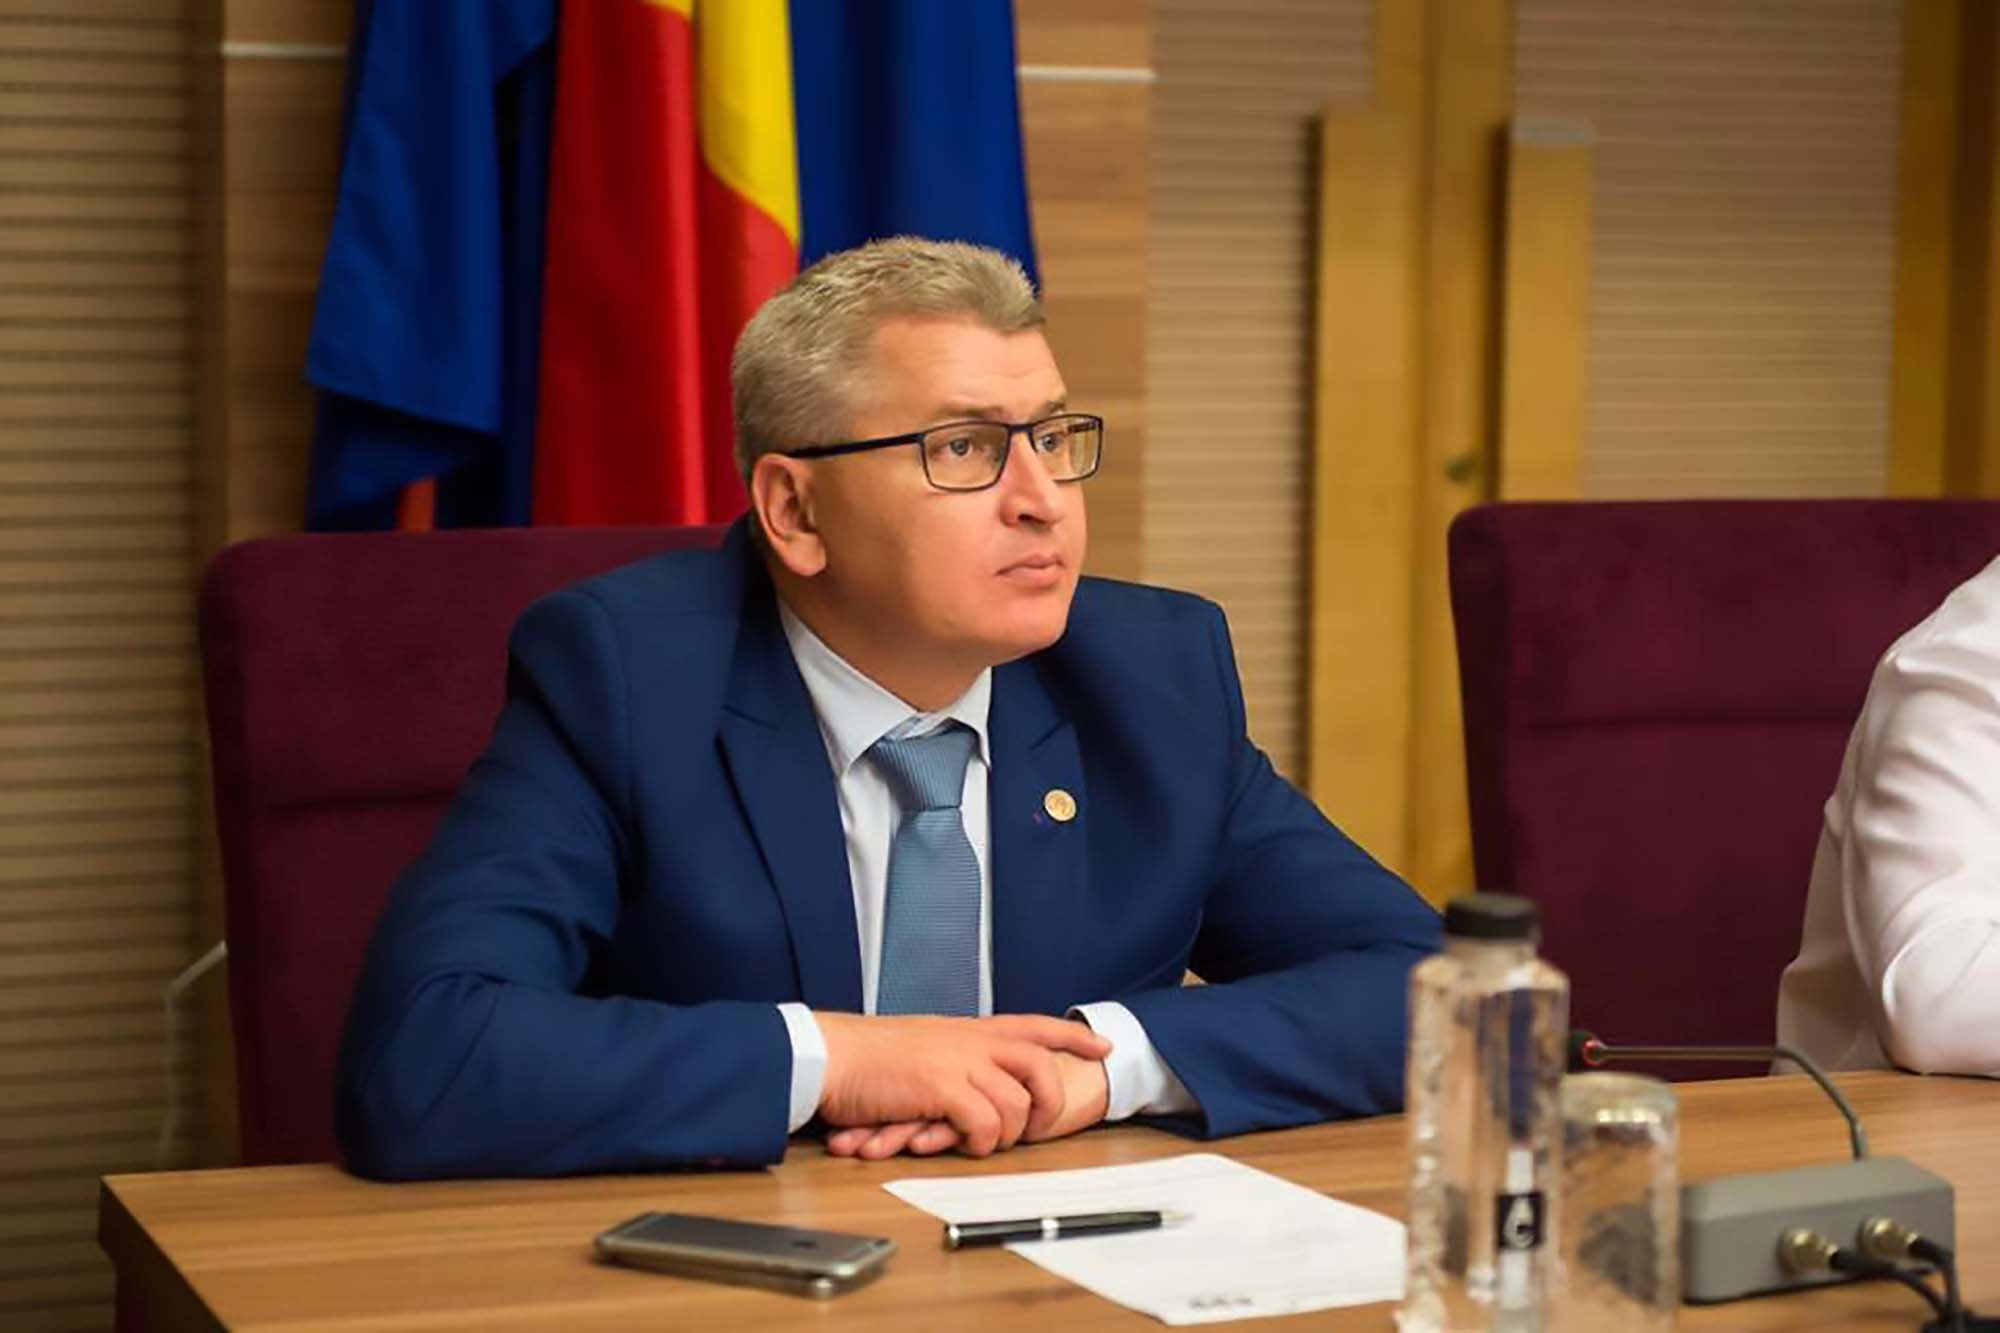 Romanian MP goes on hunger strike – and then quits after just three hours